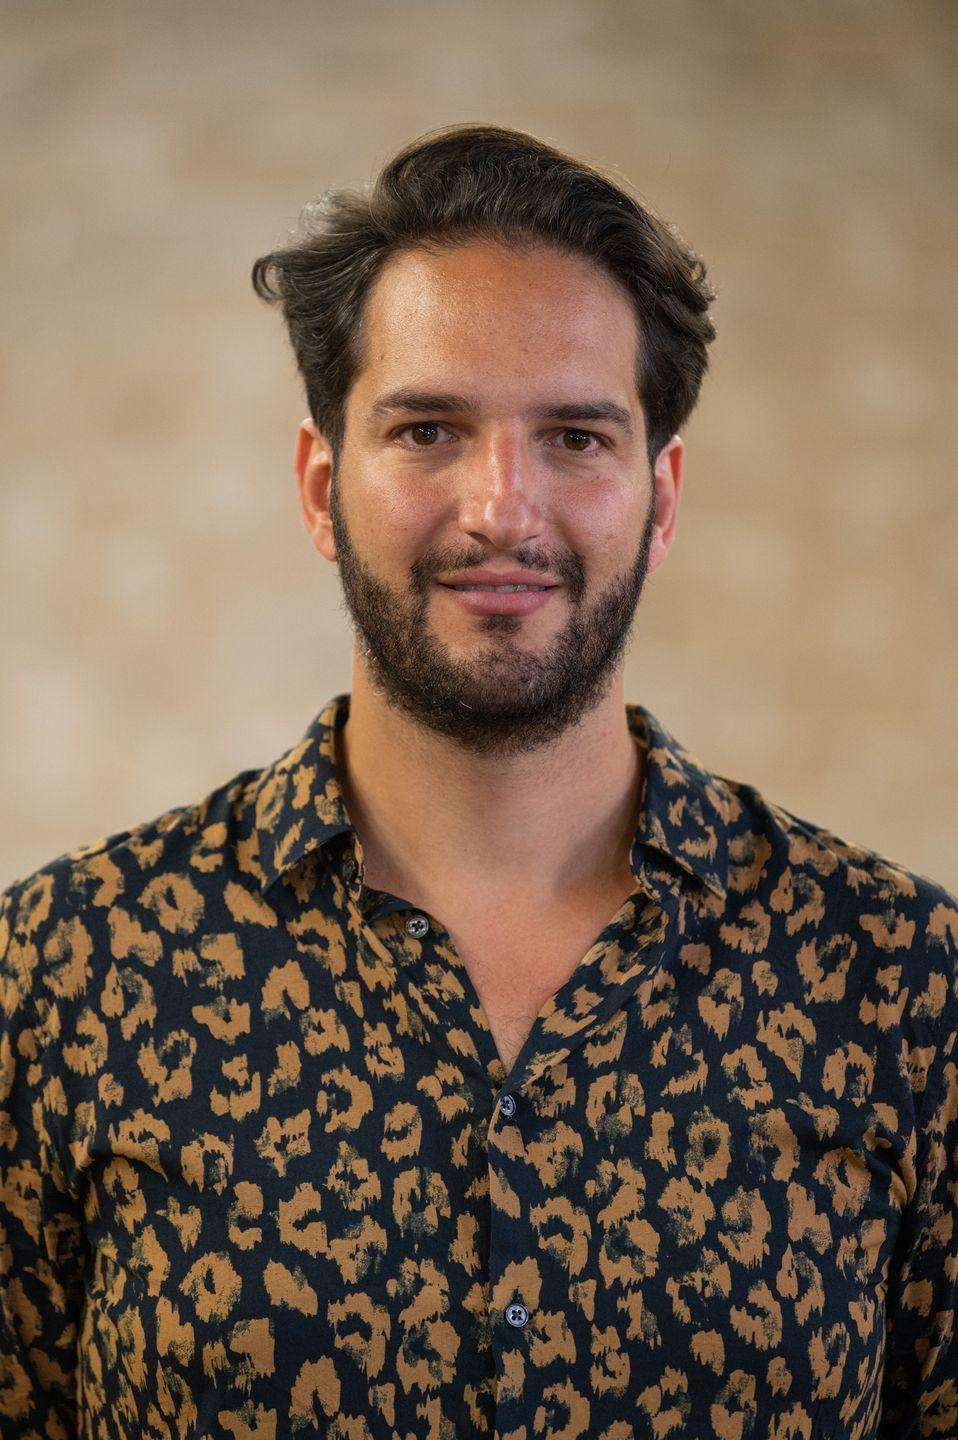 <p>Peter Grech, designer, director of SpaceMaker Interiors, and former doctor, loves creating 'beautiful, bold, curated and personal spaces' for his clients.</p><p><strong>Q: </strong>What was the biggest challenge you faced during the competition?</p><p><strong>A: '</strong>This competition had so many challenges it is quite hard to pick one. I found it most challenging to finalise the design, source and install to the level I was accustomed to within the time and budget constraints of the competition. </p><p>'I normally take my time developing design solutions, building mood boards, sourcing beautiful pieces and having feasibility meetings with trades and clients before installation to make sure that the end product is just perfect.'</p>